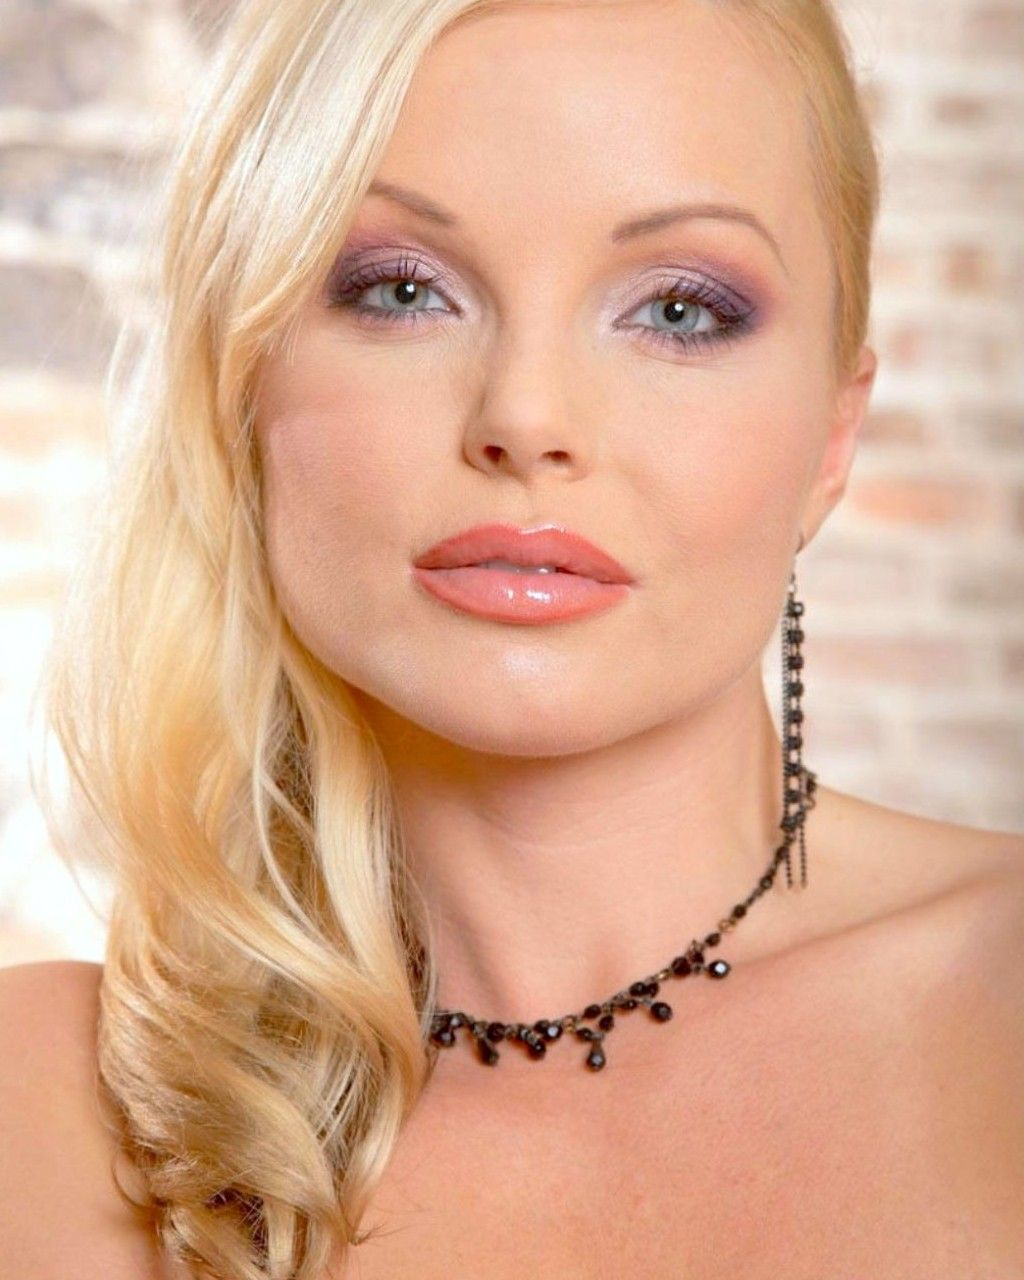 Silvia Saint is one of those incredible